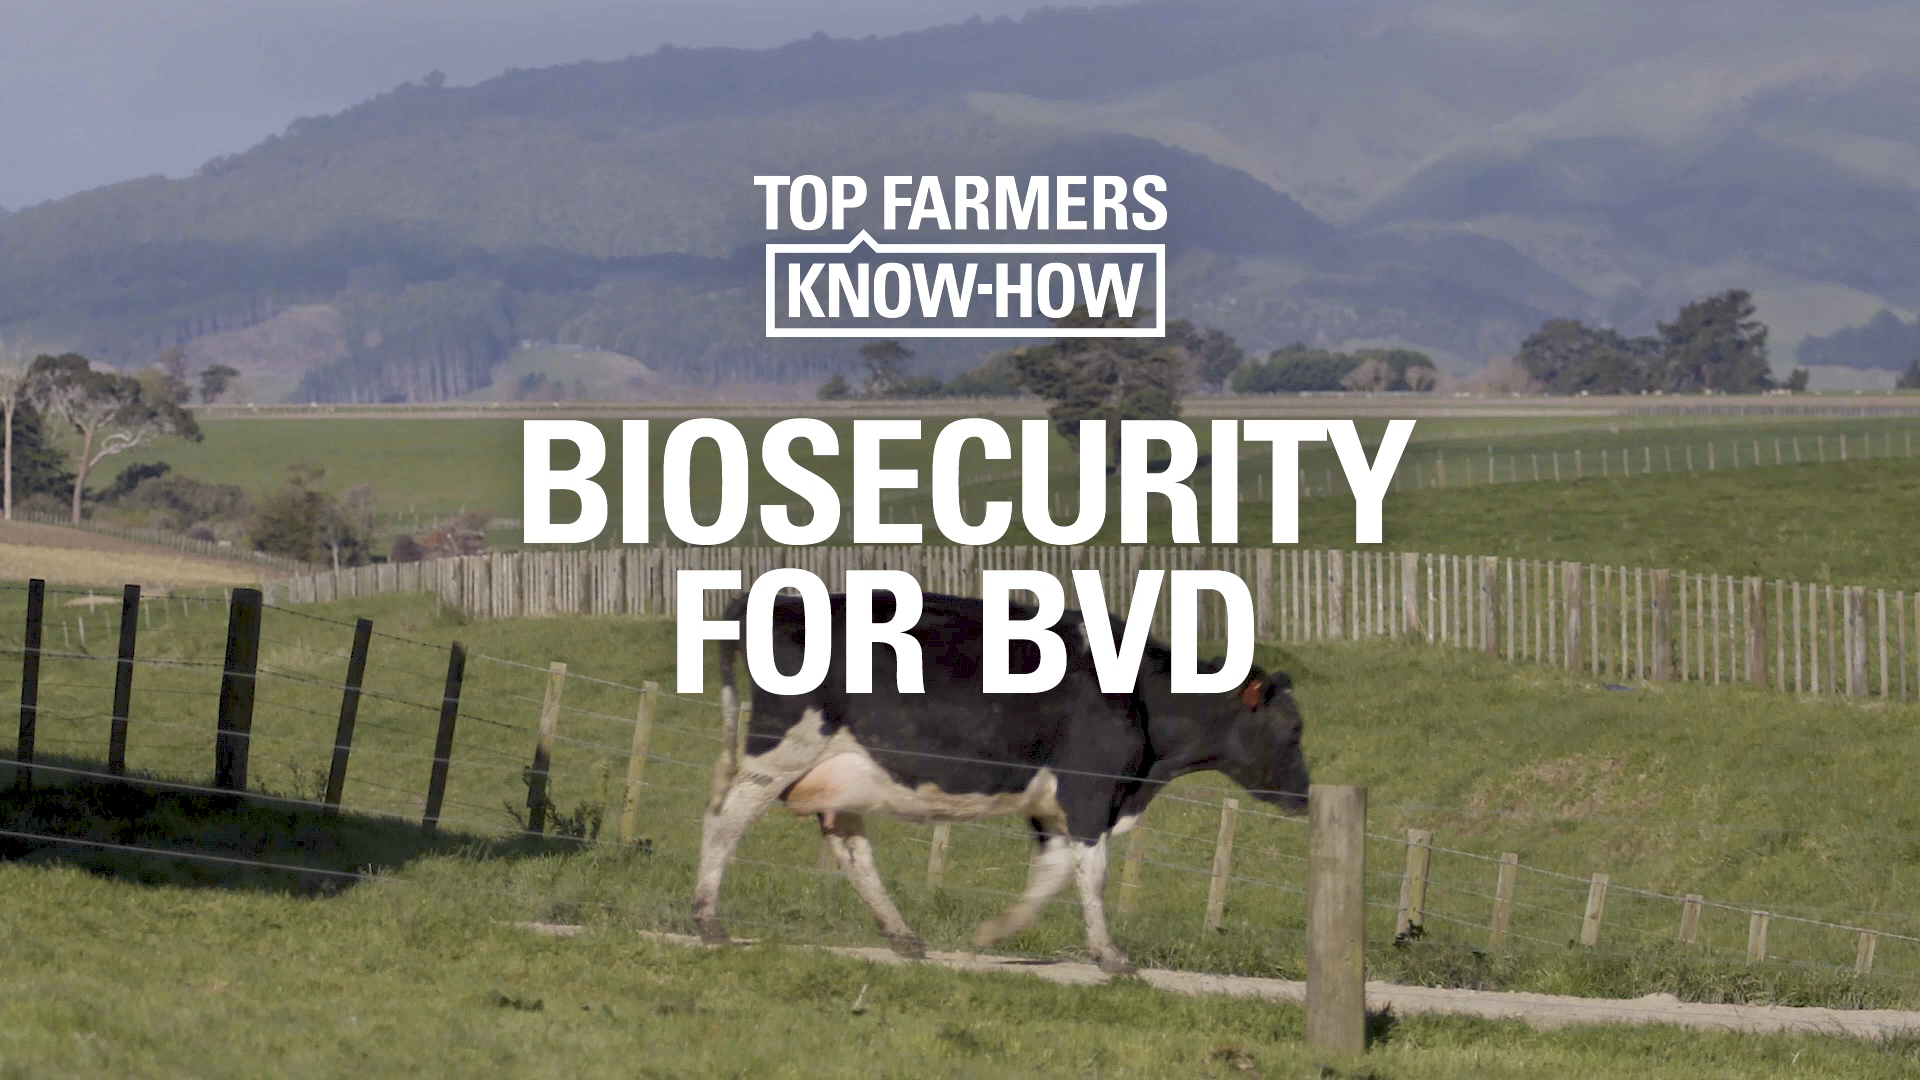 Biosecurity for BVD